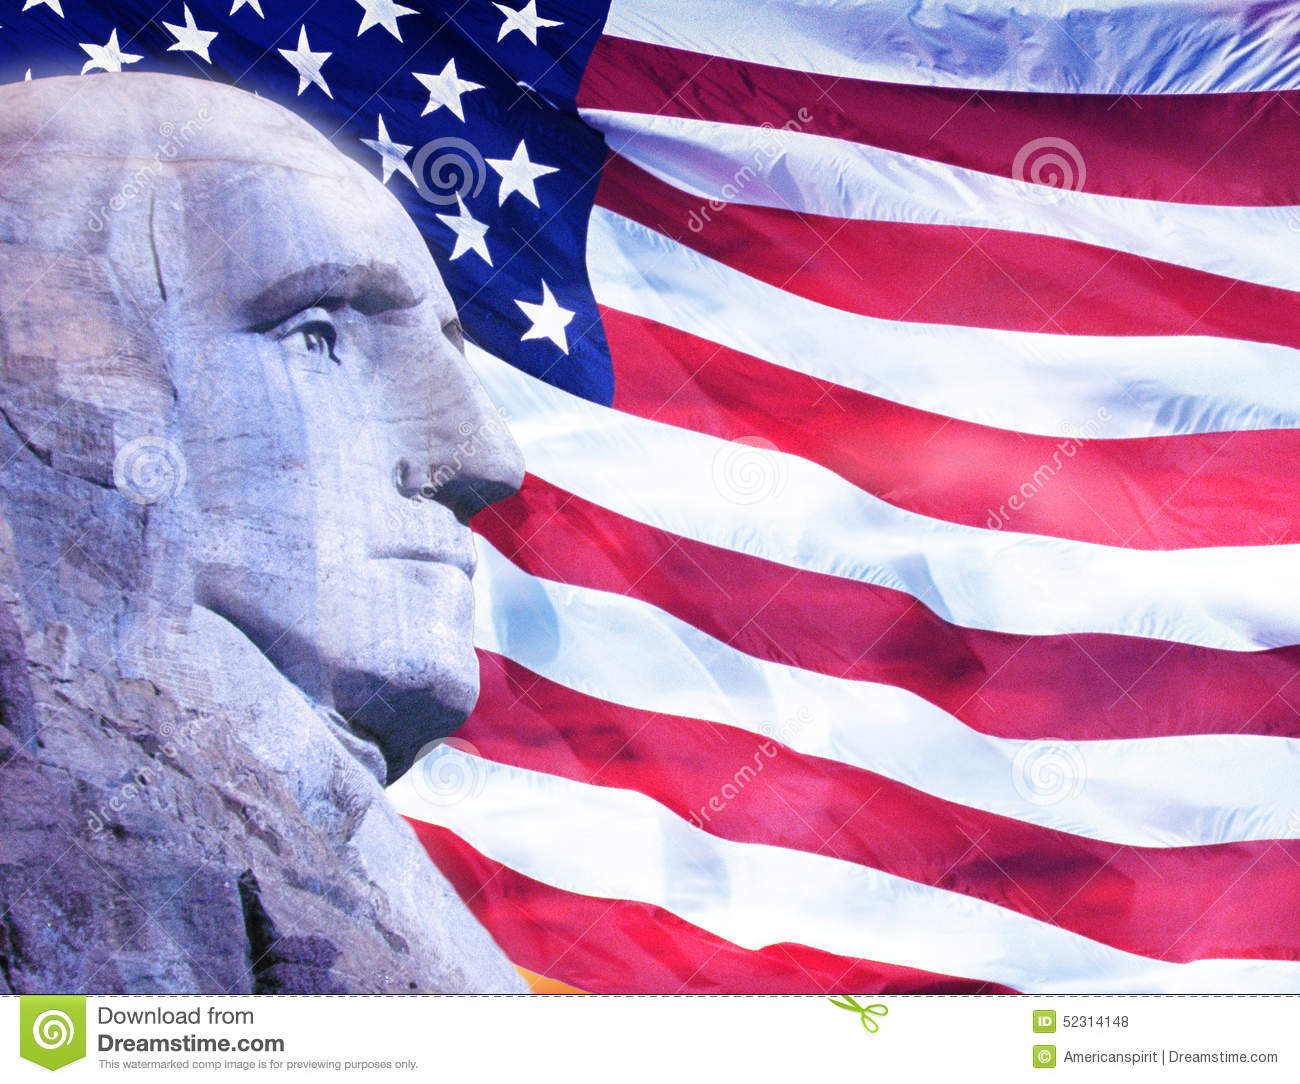 the state of the us government during the presidency of george washington On april 30, 1789, george washington, standing on the balcony of federal hall on wall street in new york, took his oath of office as the first president of the united states on april 30, 1789.